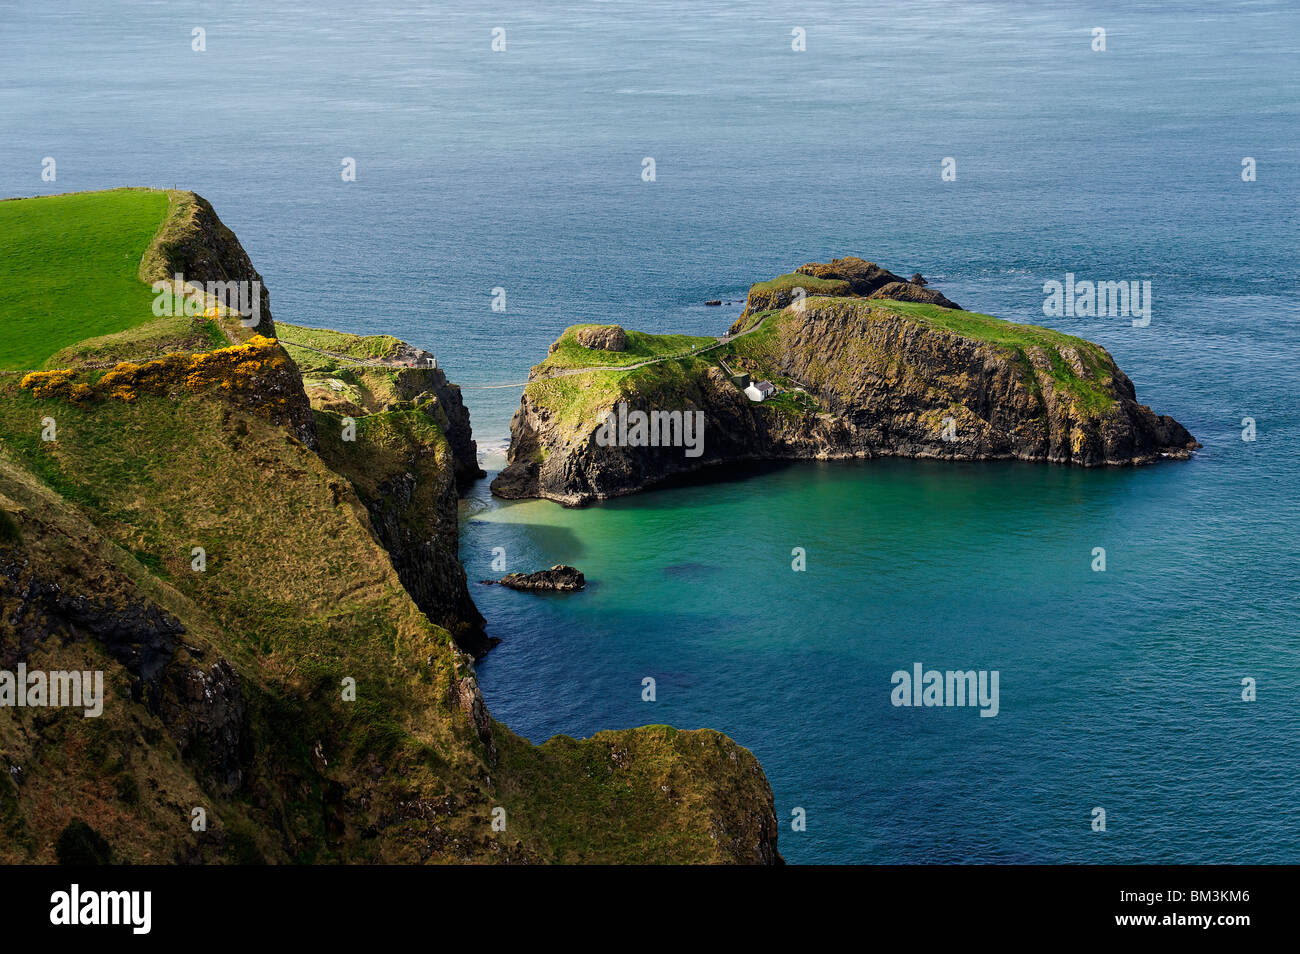 A view of Carrick Island on the North Antrim Coast. - Stock Image